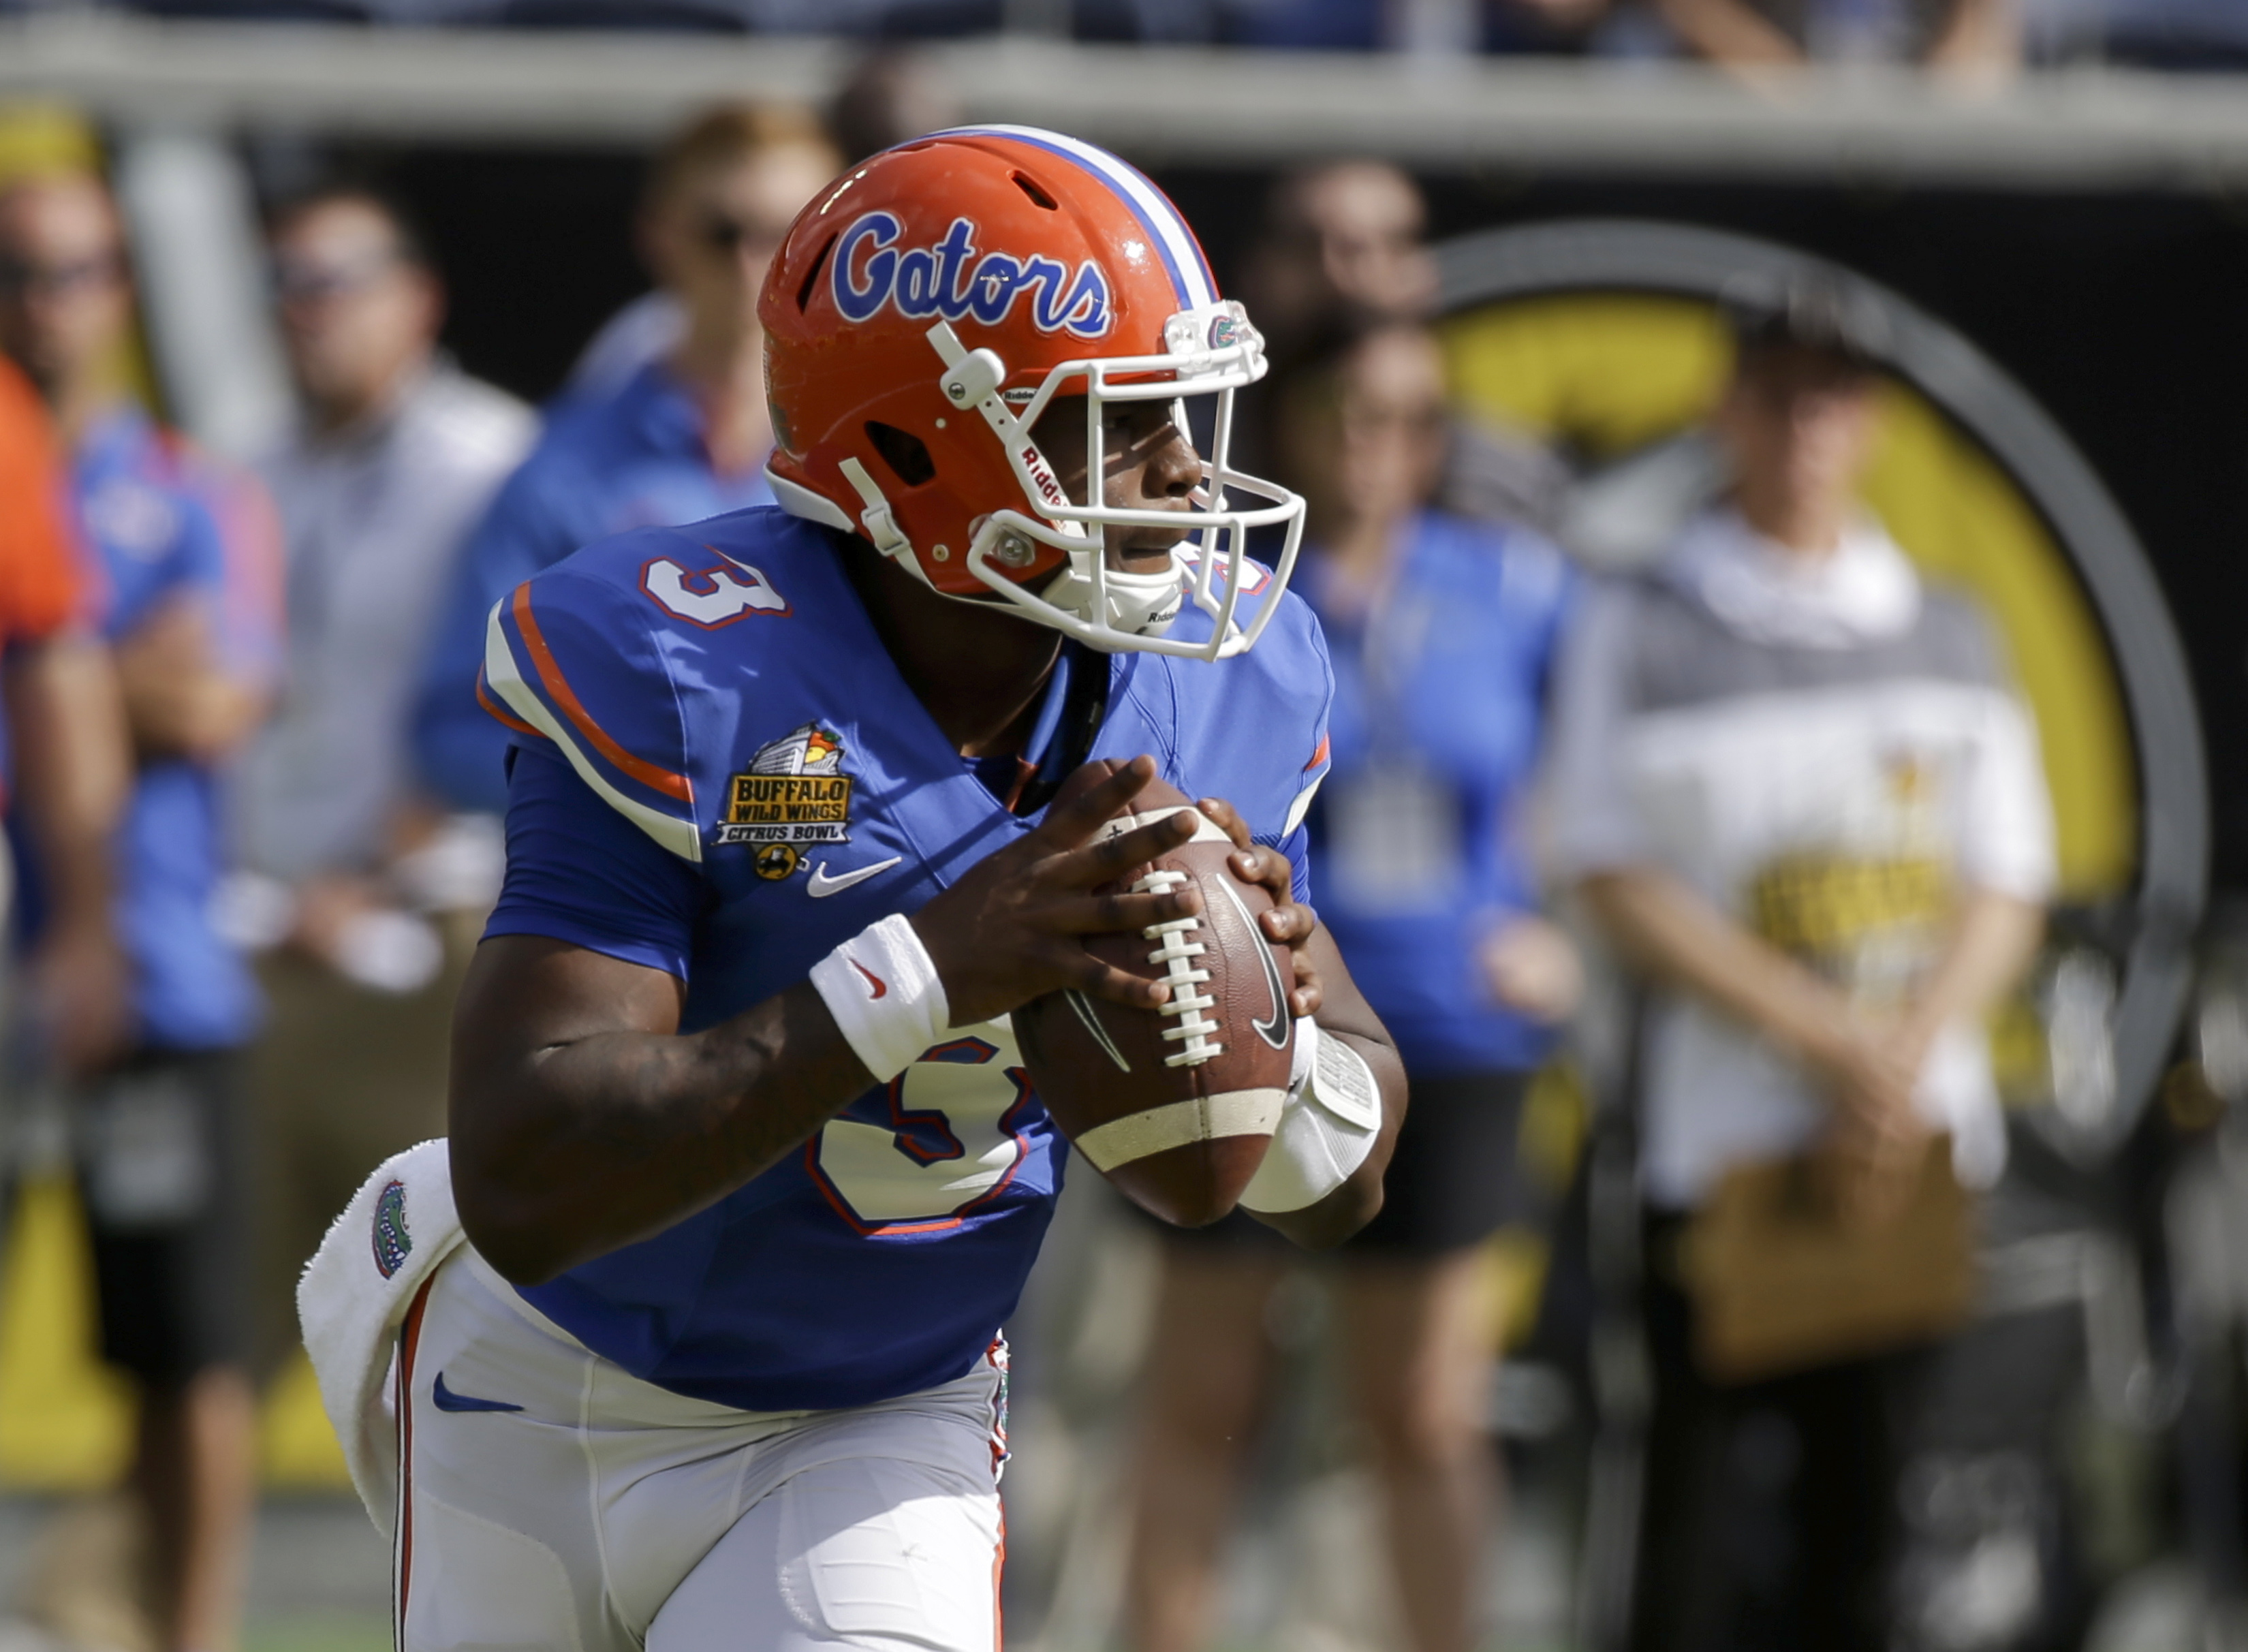 Florida quarterback Treon Harris (3) looks for a receiver against Michigan during the first half of the Citrus Bowl NCAA college football game, Friday, Jan. 1, 2016, in Orlando, Fla. (AP Photo/John Raoux)